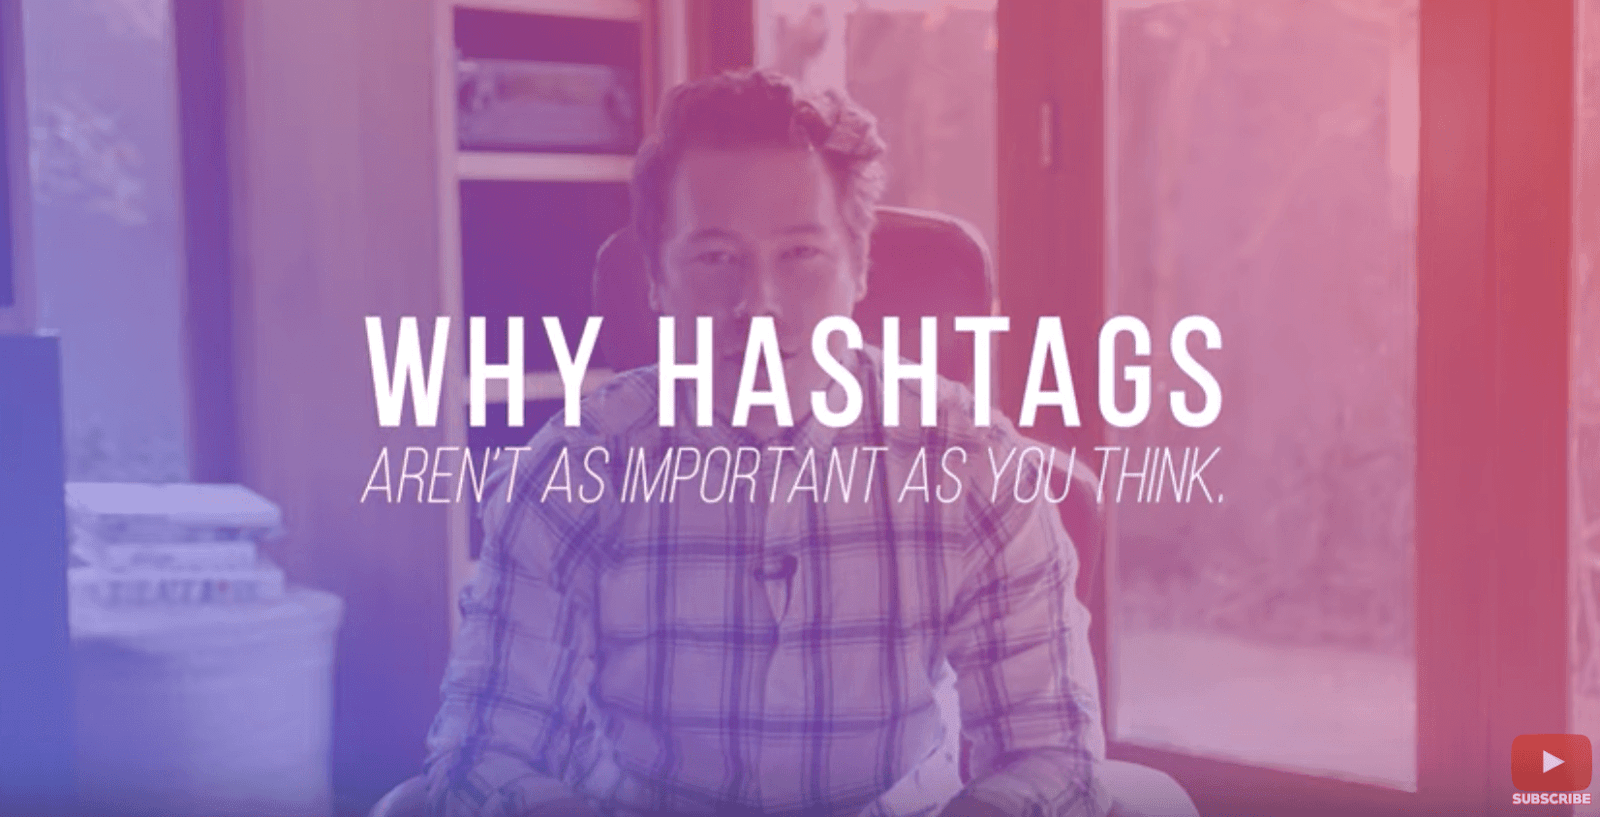 why hashtags aren't as important as you think